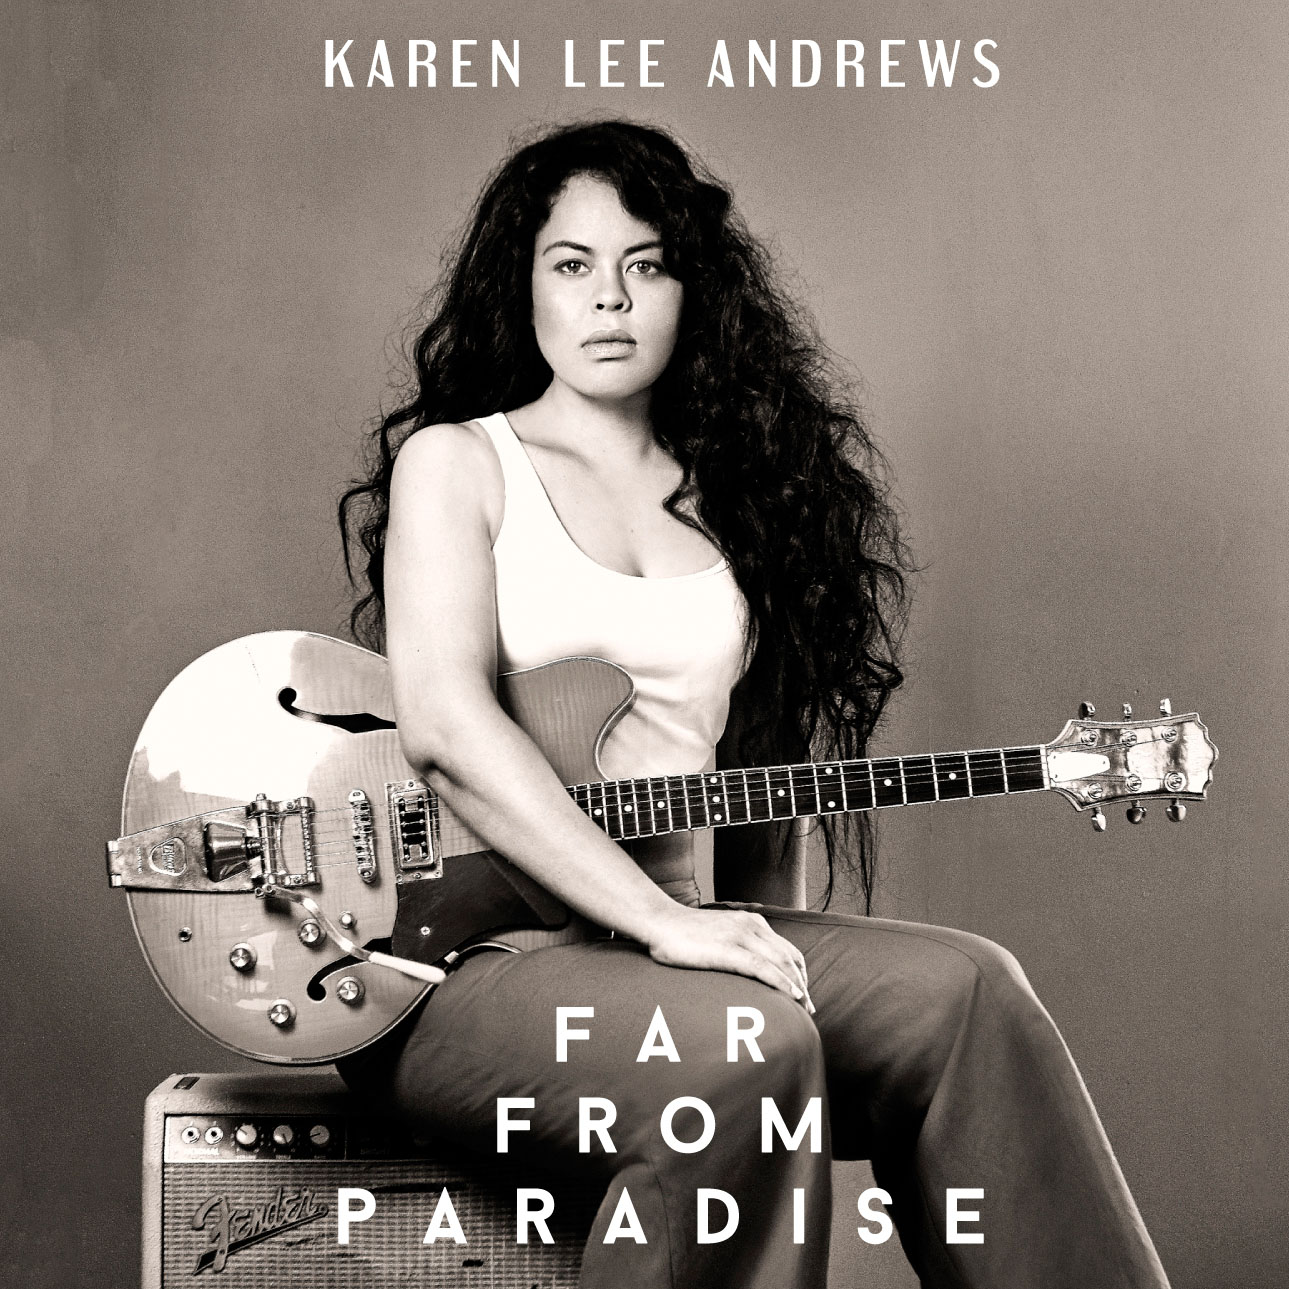 Karen Lee Andrews